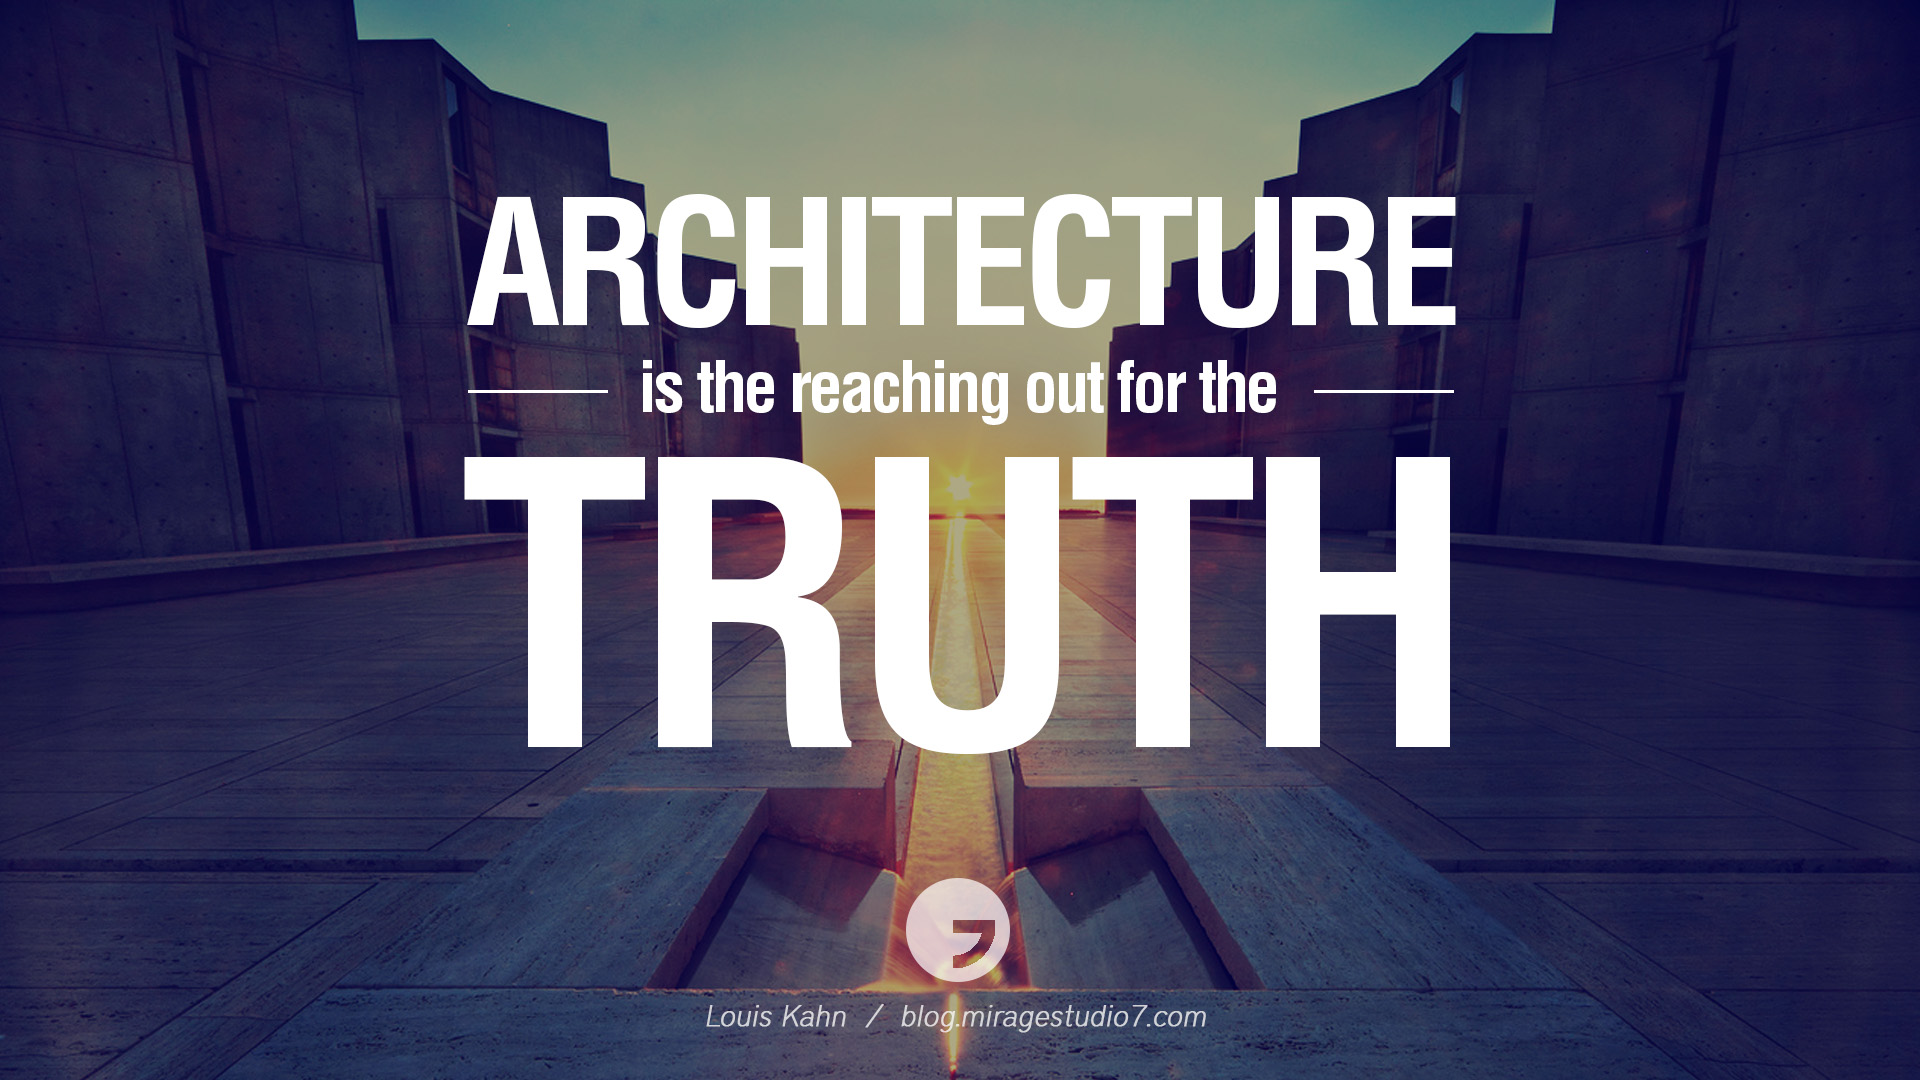 Quotes by famous architects quotesgram for Architecture quotes